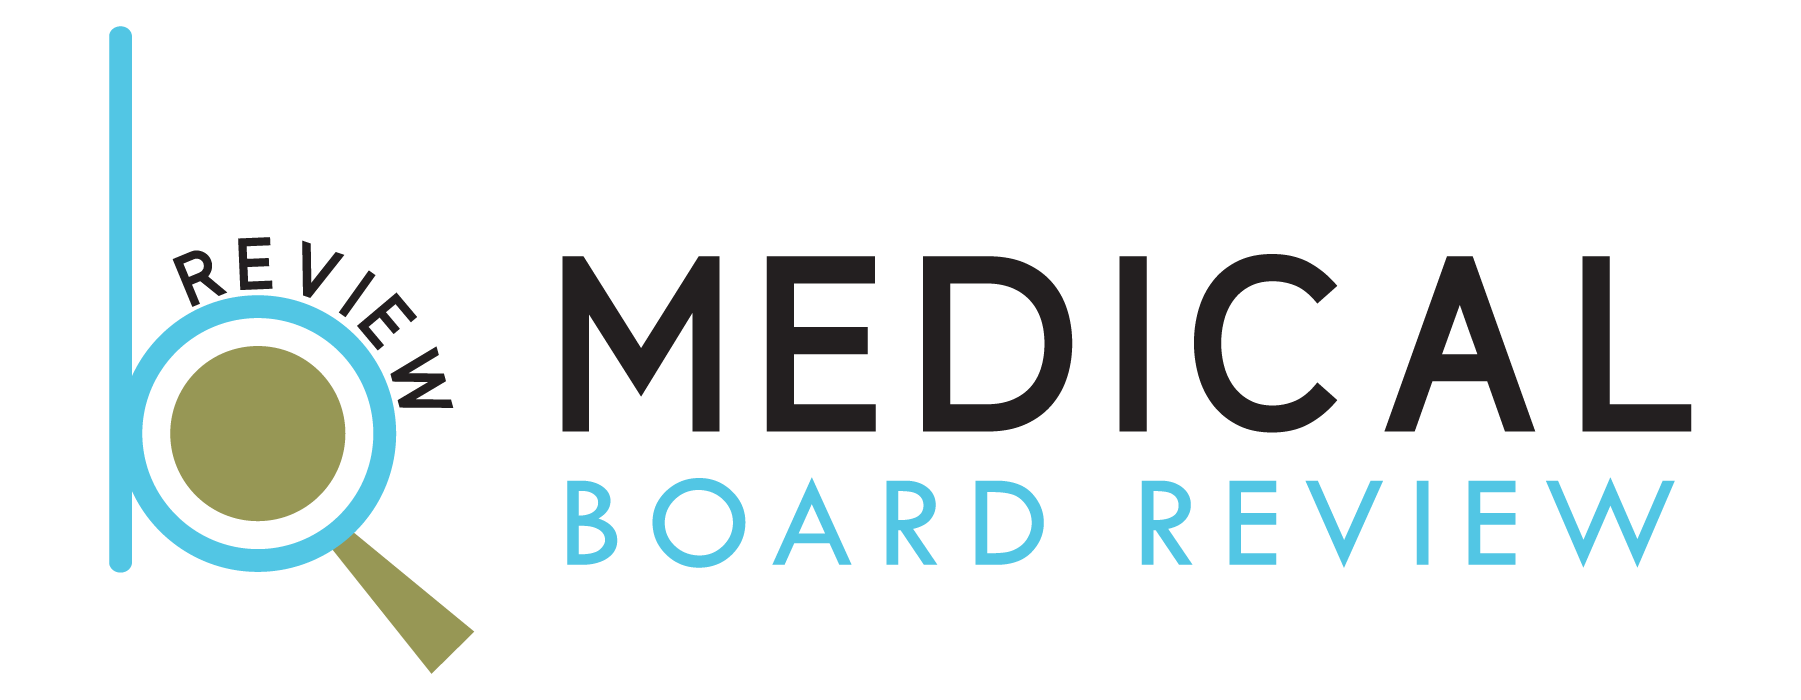 Medical Board Review, LLC Logo